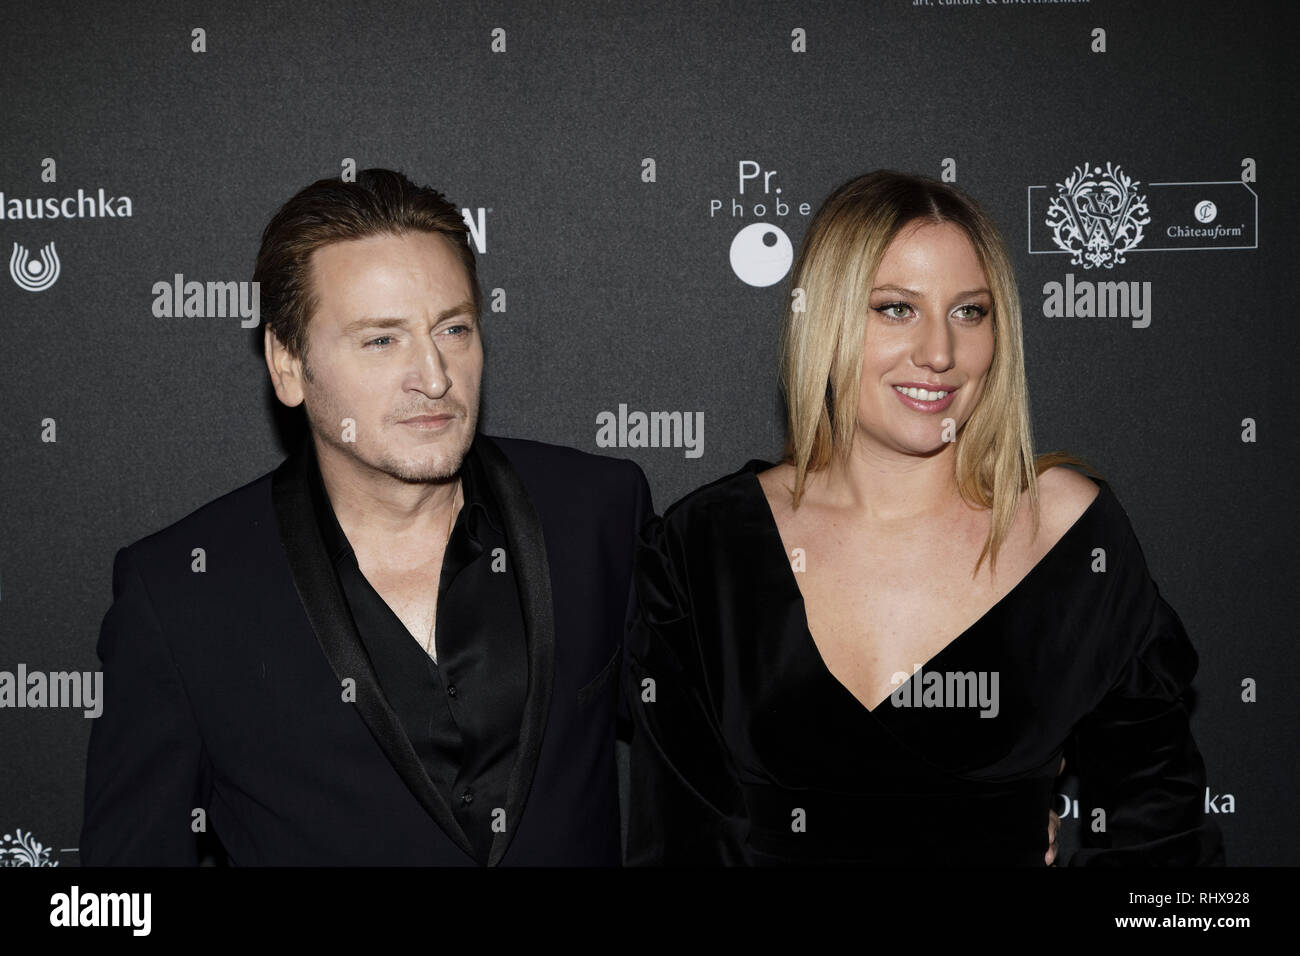 Paris, France. 4th Feb, 2019. Benoît Magimel and Margot Pelletier attend the 14th Crystal Globes Ceremony at Salle Wagram on February 4, 2019 in Paris, France. Credit: Bernard Menigault/Alamy Live News - Stock Image